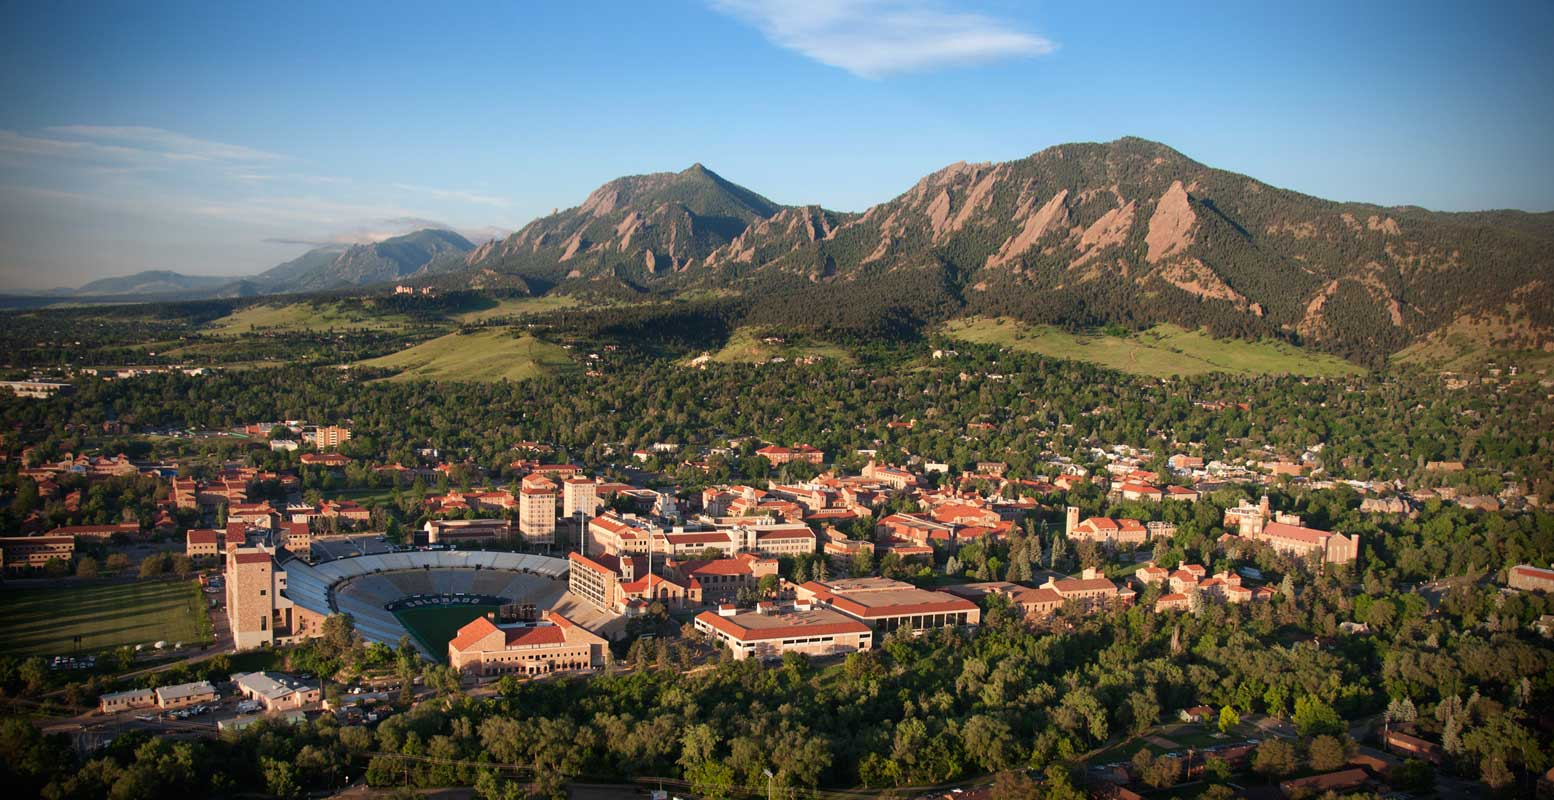 colorado colleges can double-count merit scholars to grow non